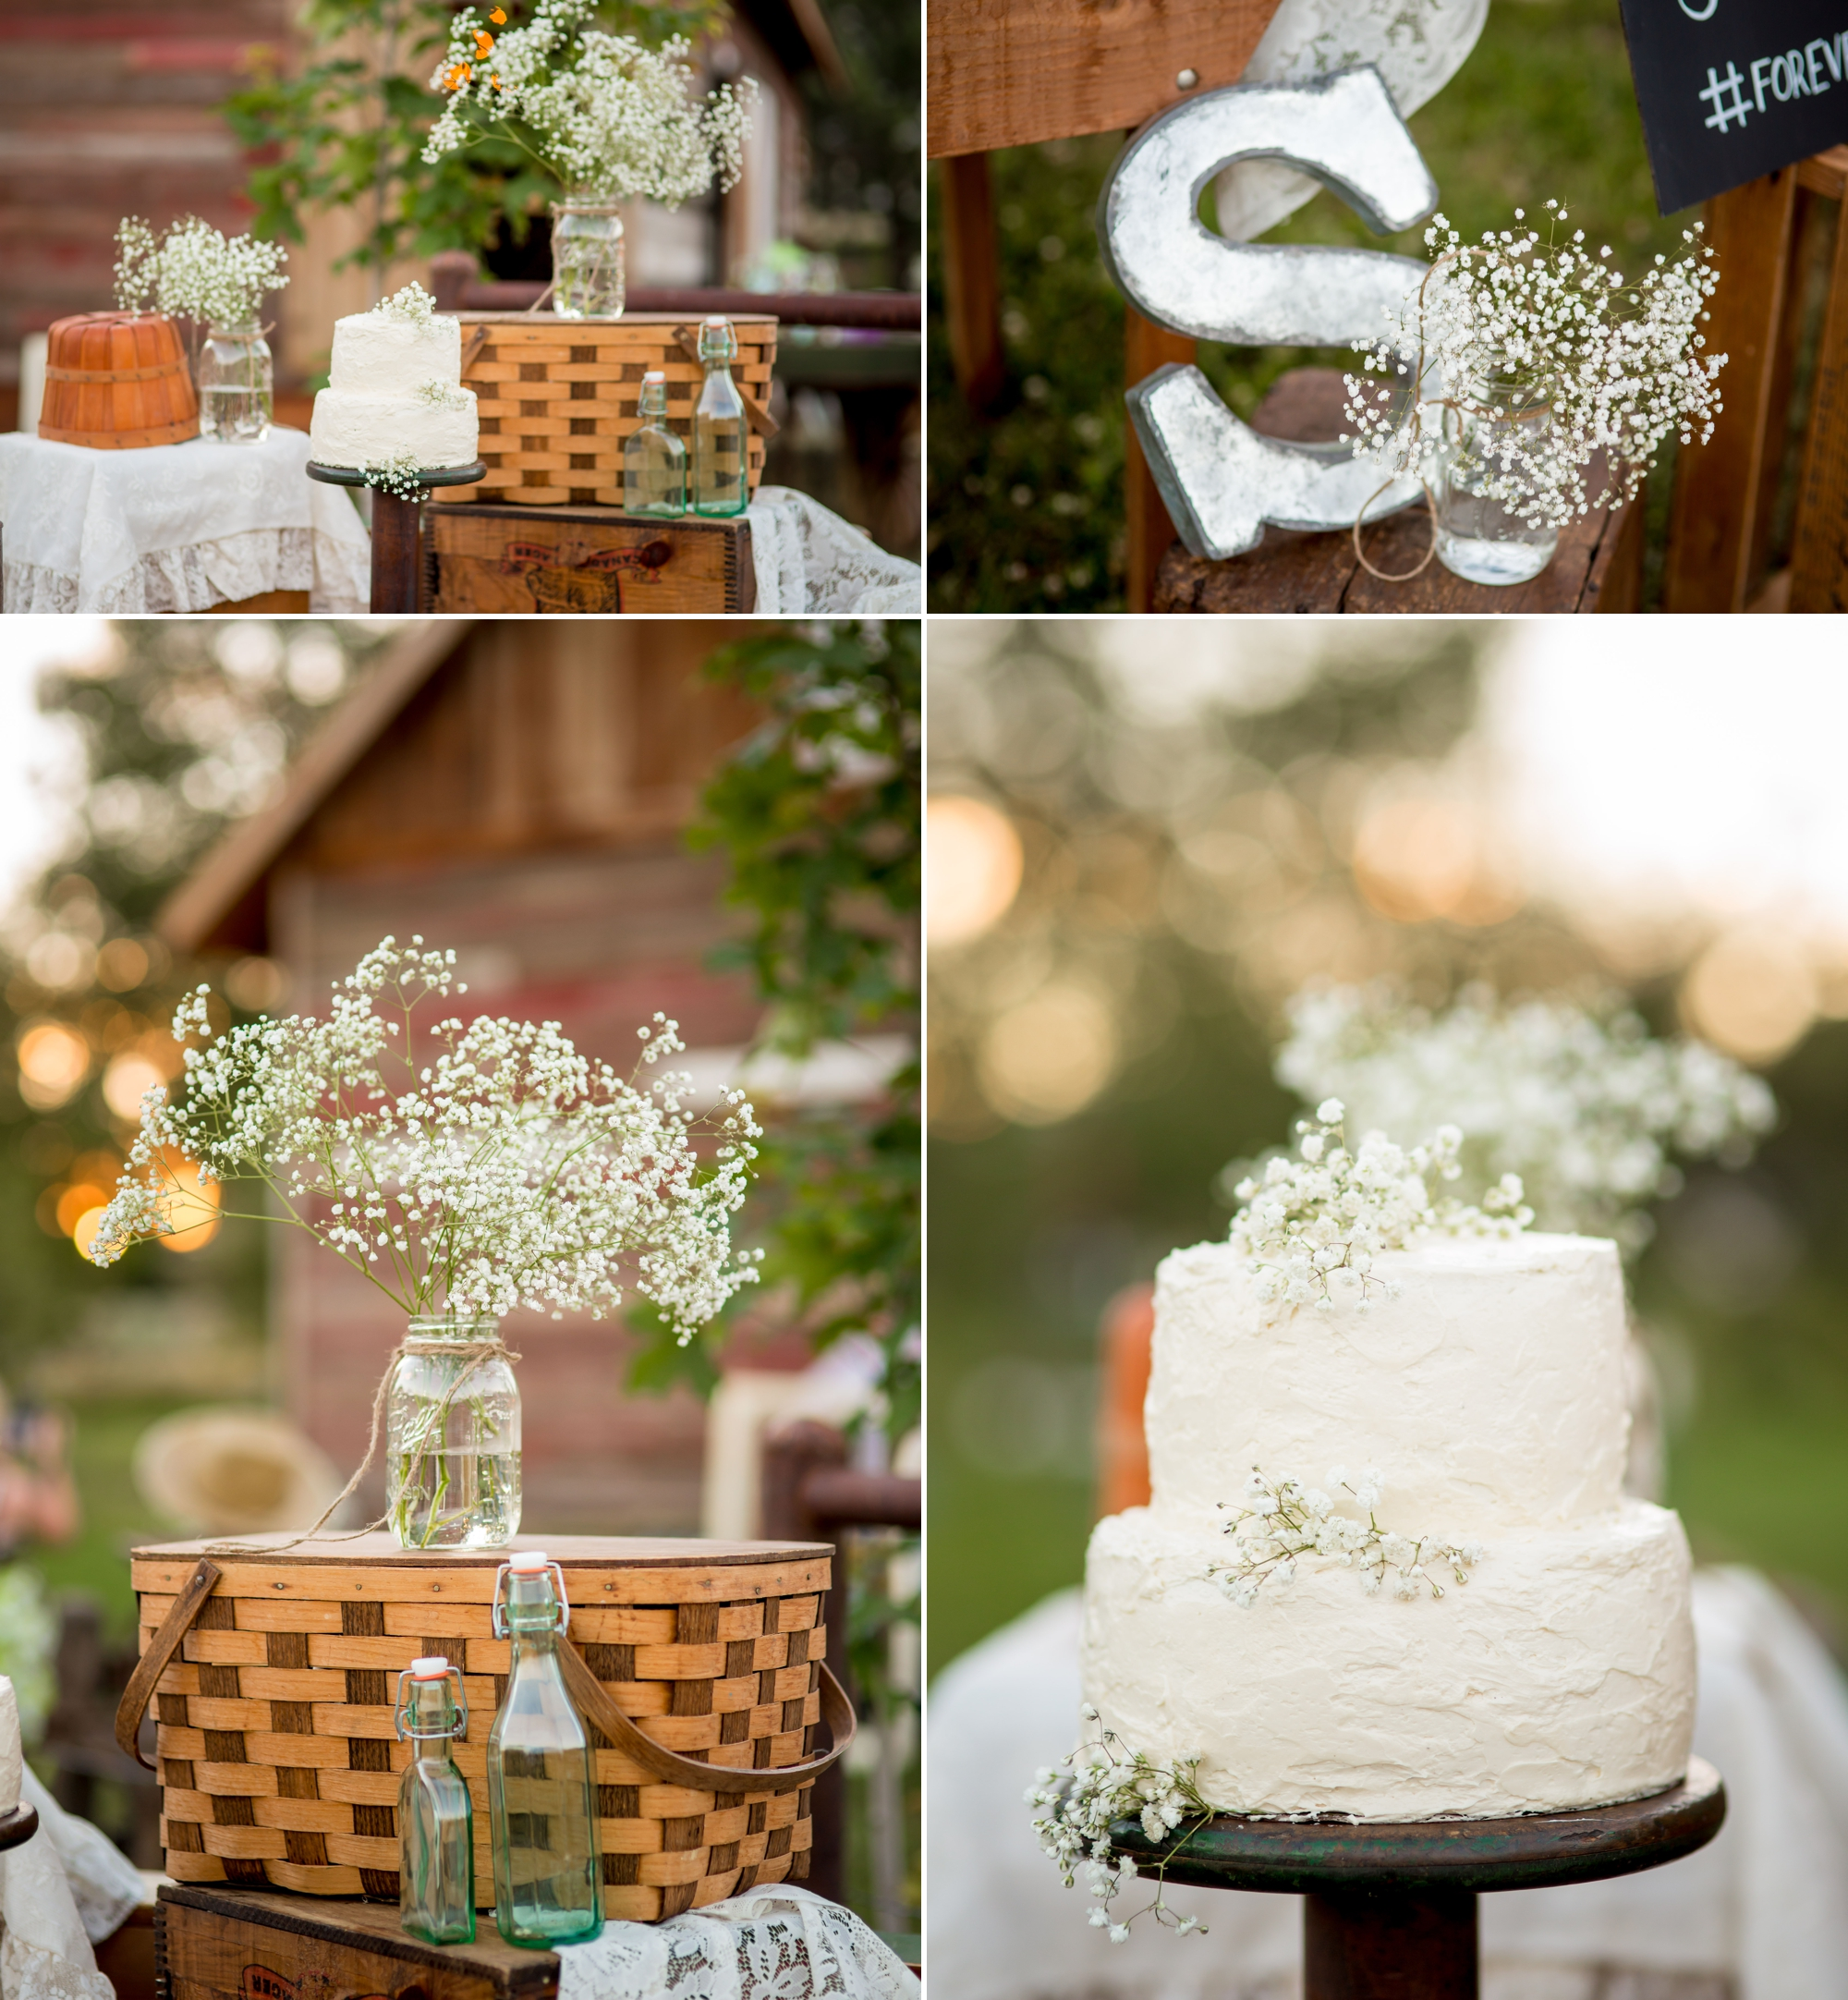 Cake details out by the truck atYa Ya Farm & Orchard